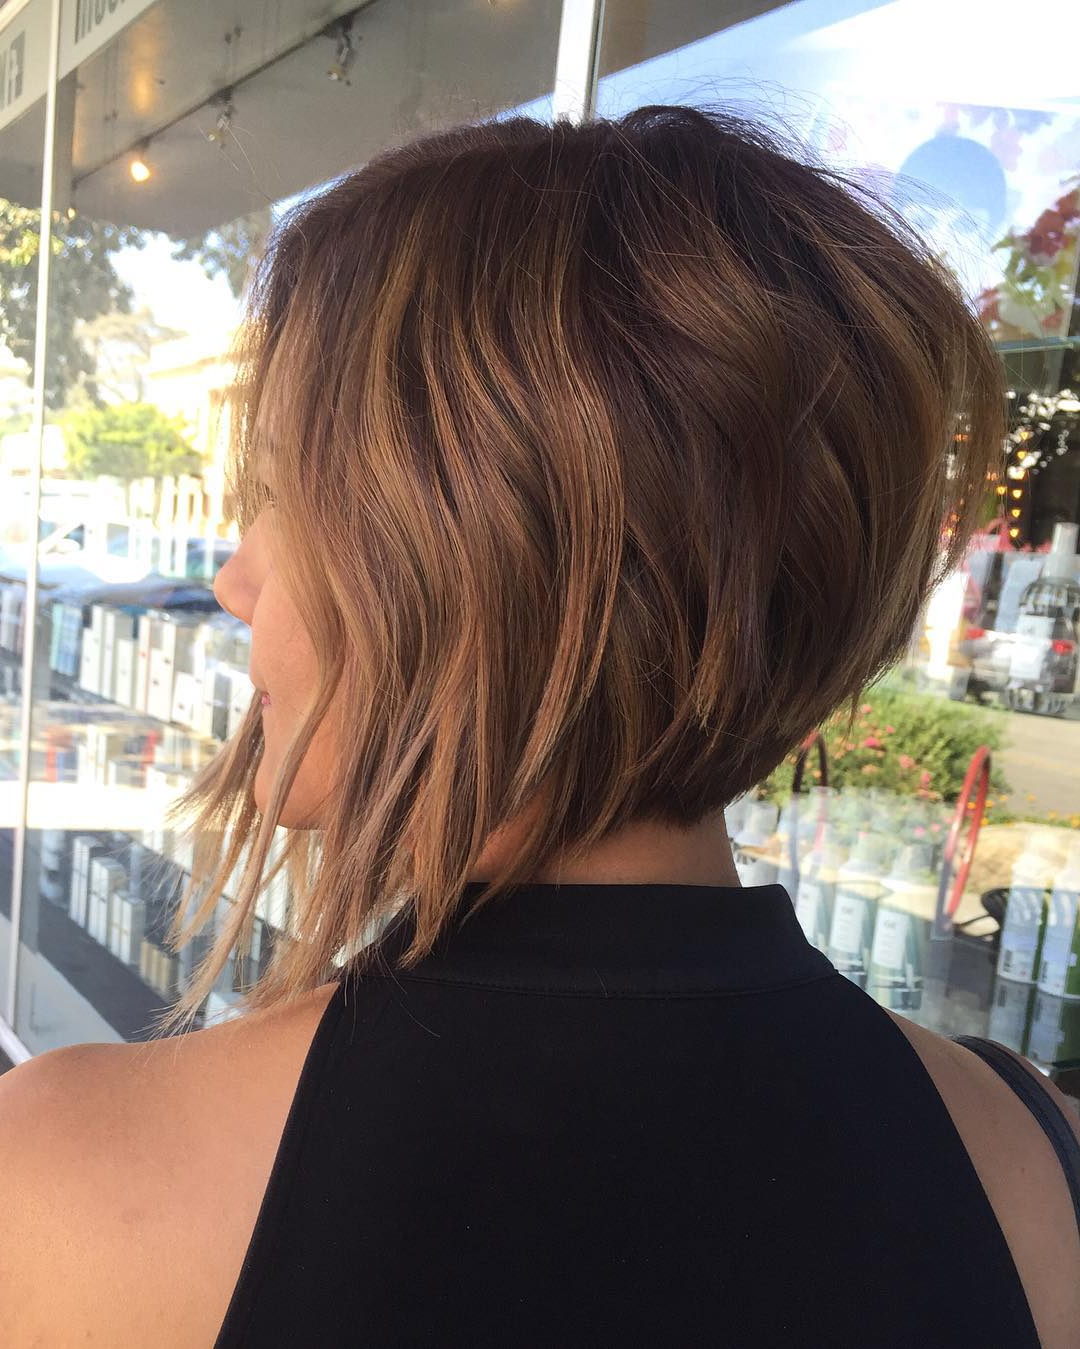 10 Best Short Straight Hairstyle Trends – Women Short Haircut Ideas 2018 With Easy Care Short Haircuts (View 2 of 25)